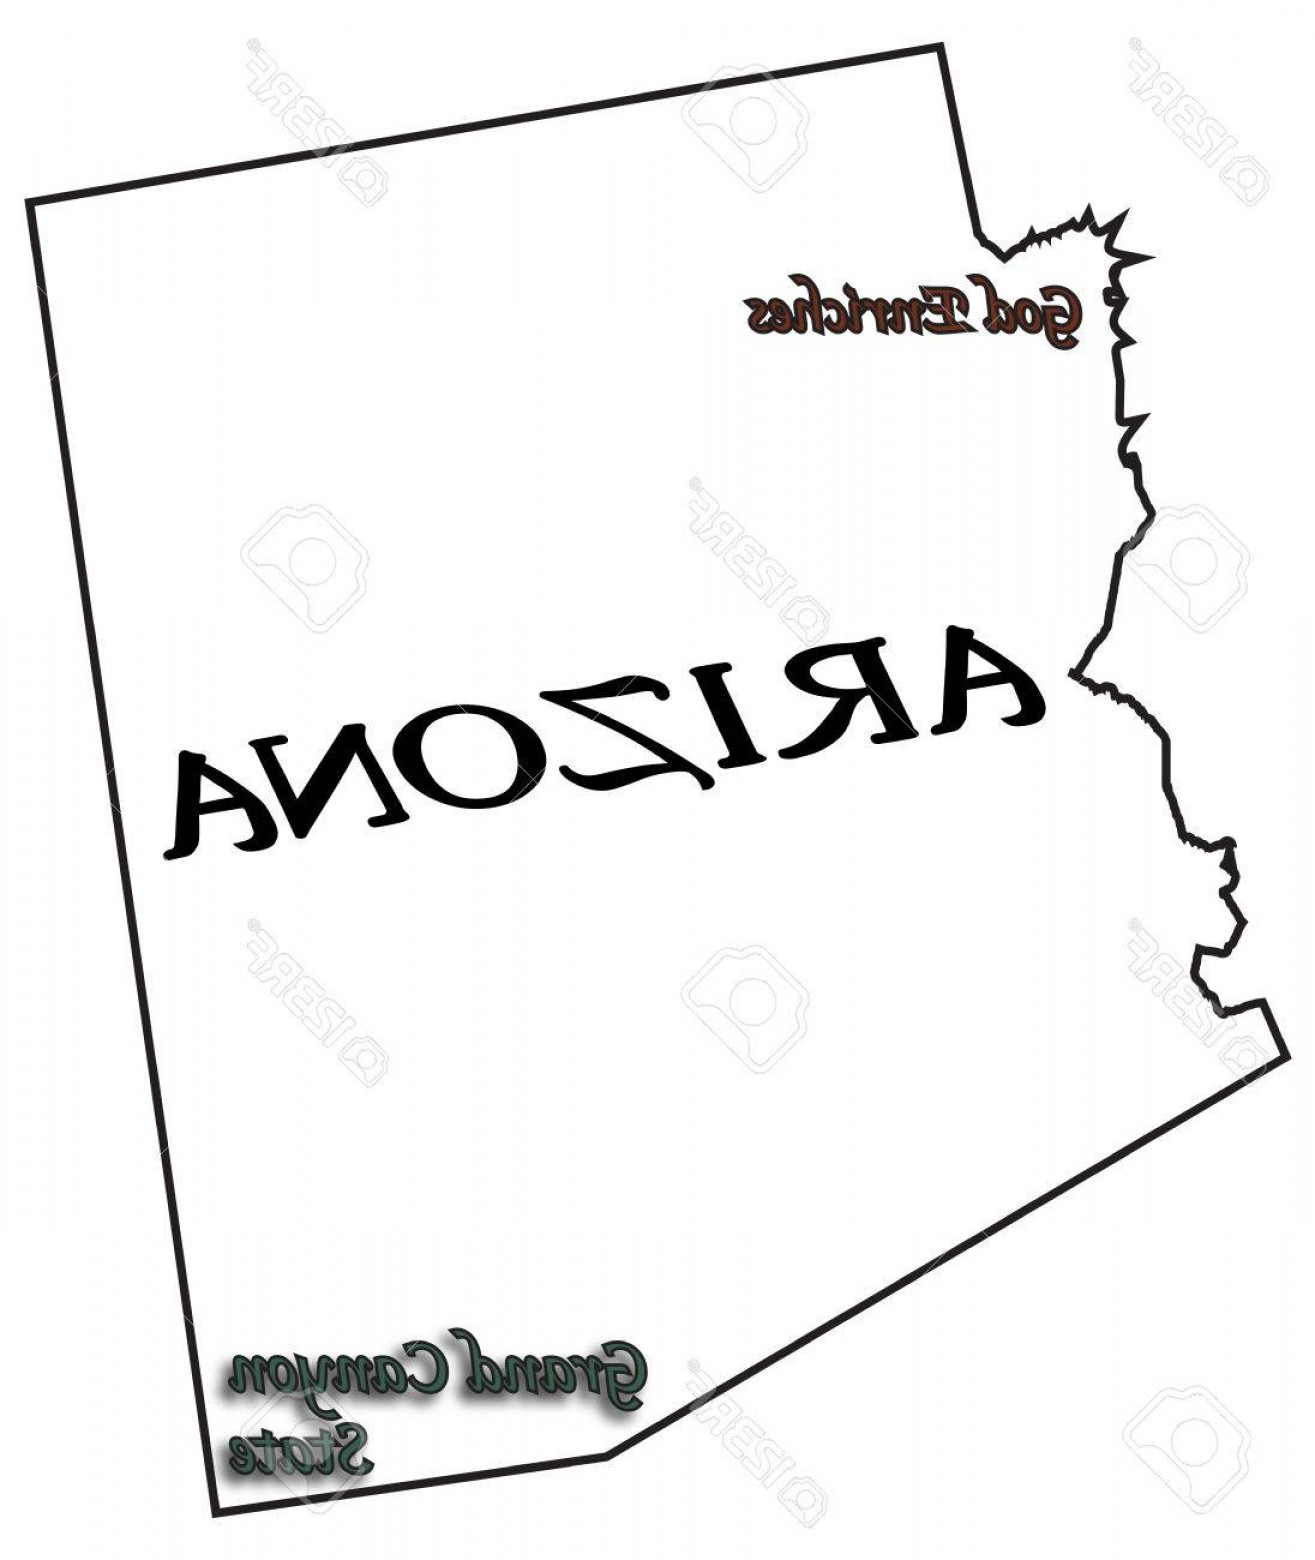 Arizona State Outline Vector: Photostock Vector An Arizona State Outline With Motto And Slogan Isolated On A White Background